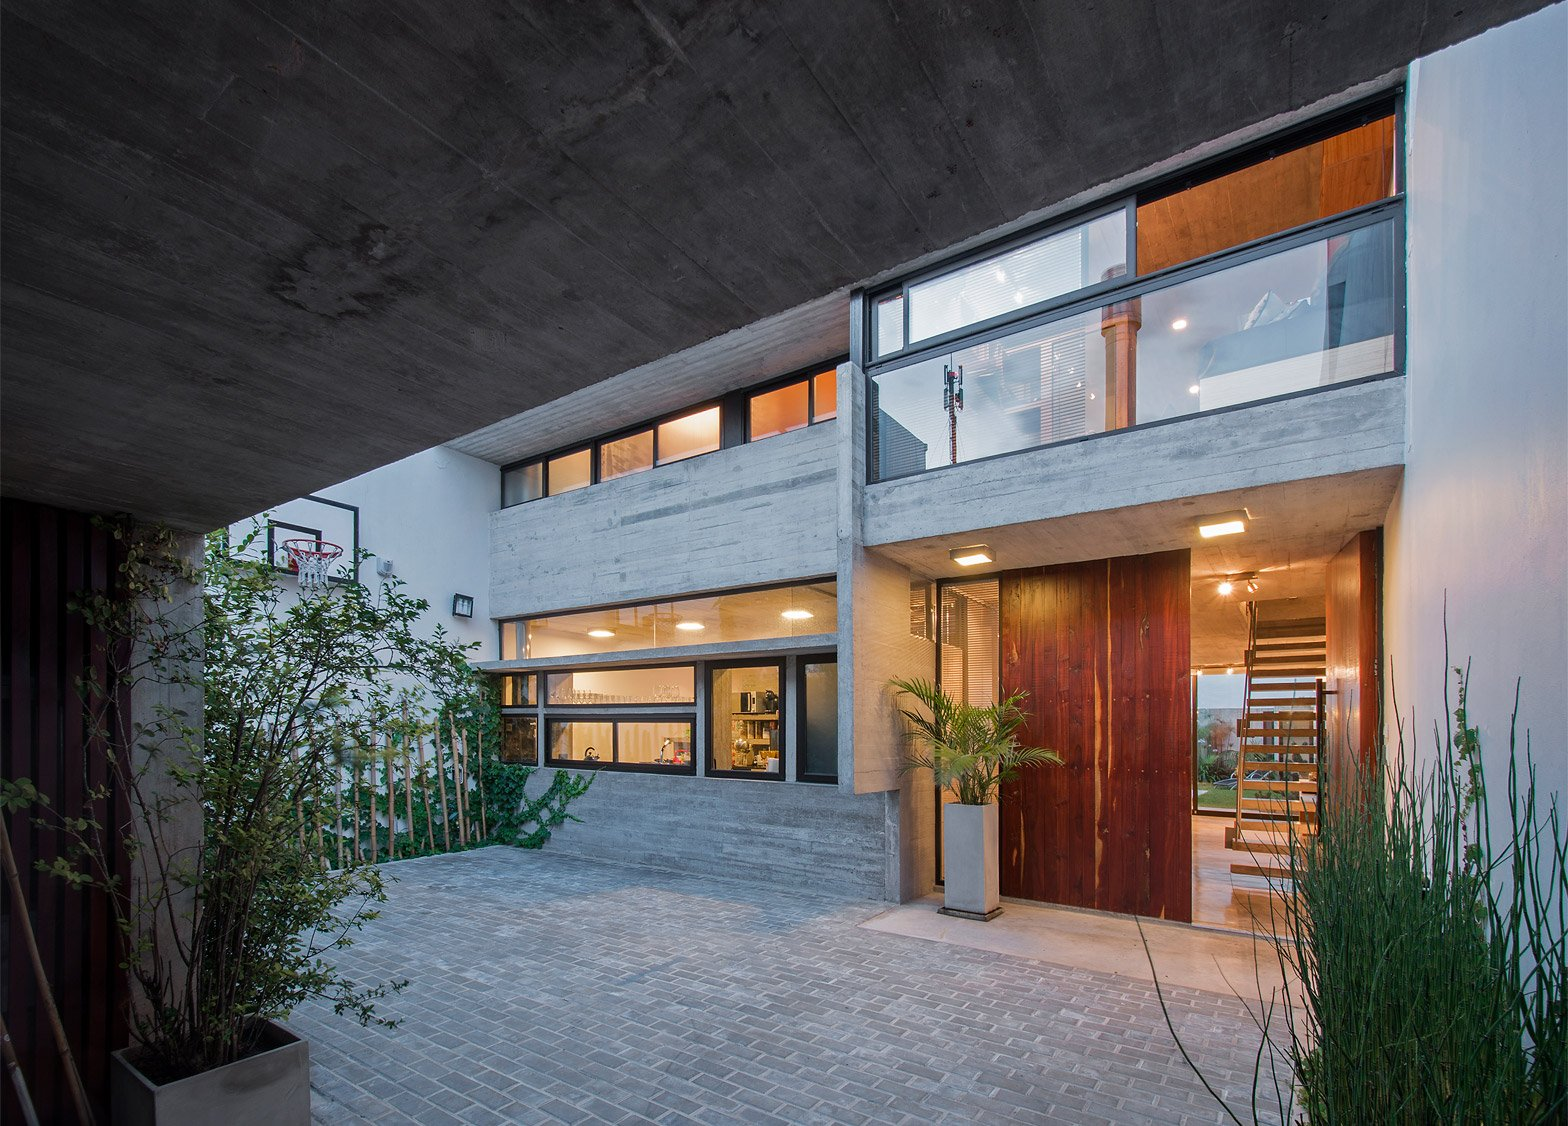 14 Of 25; Two Houses Conesa By Luciano Kruk